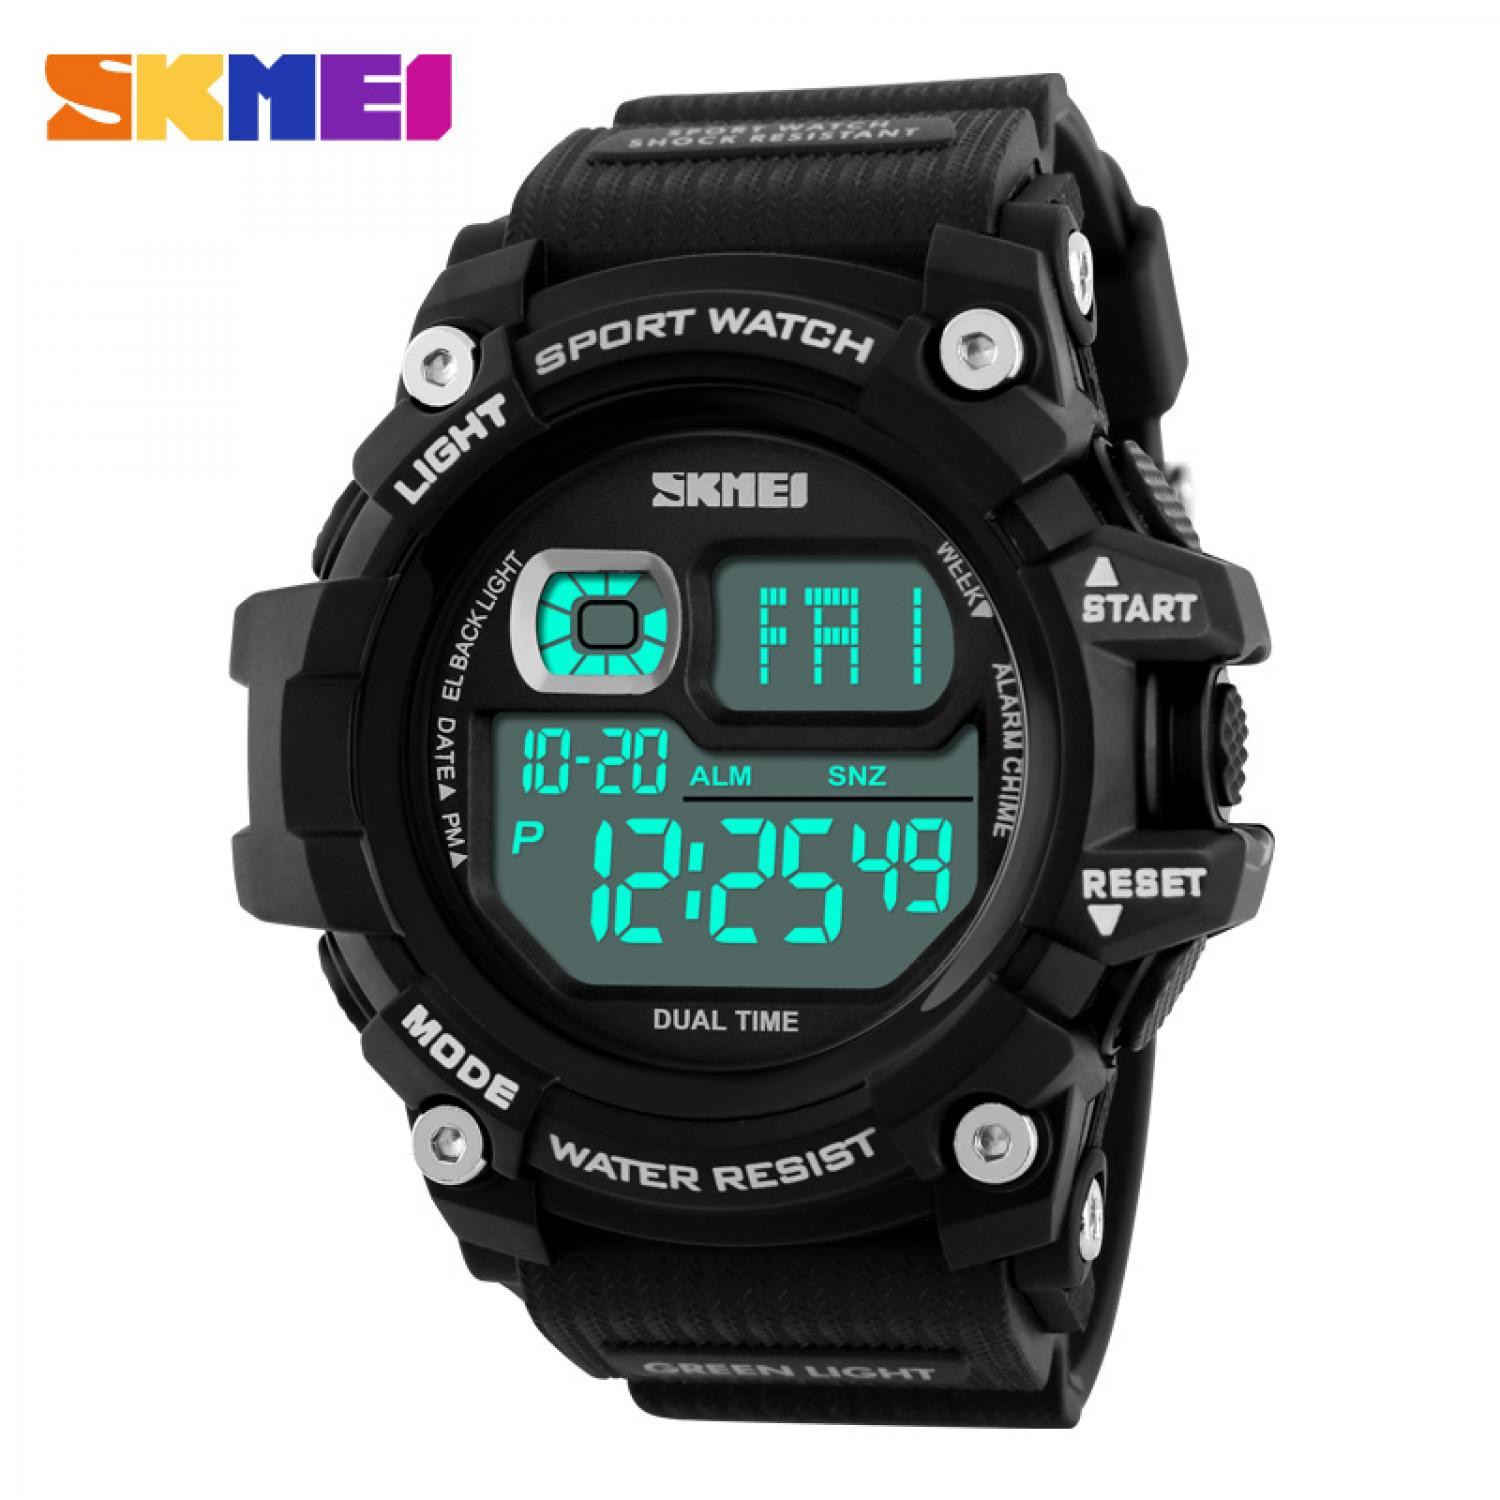 Jam Tangan Pria SKMEI Digital S-Shock Sport Watch Original DG1229 Hitam